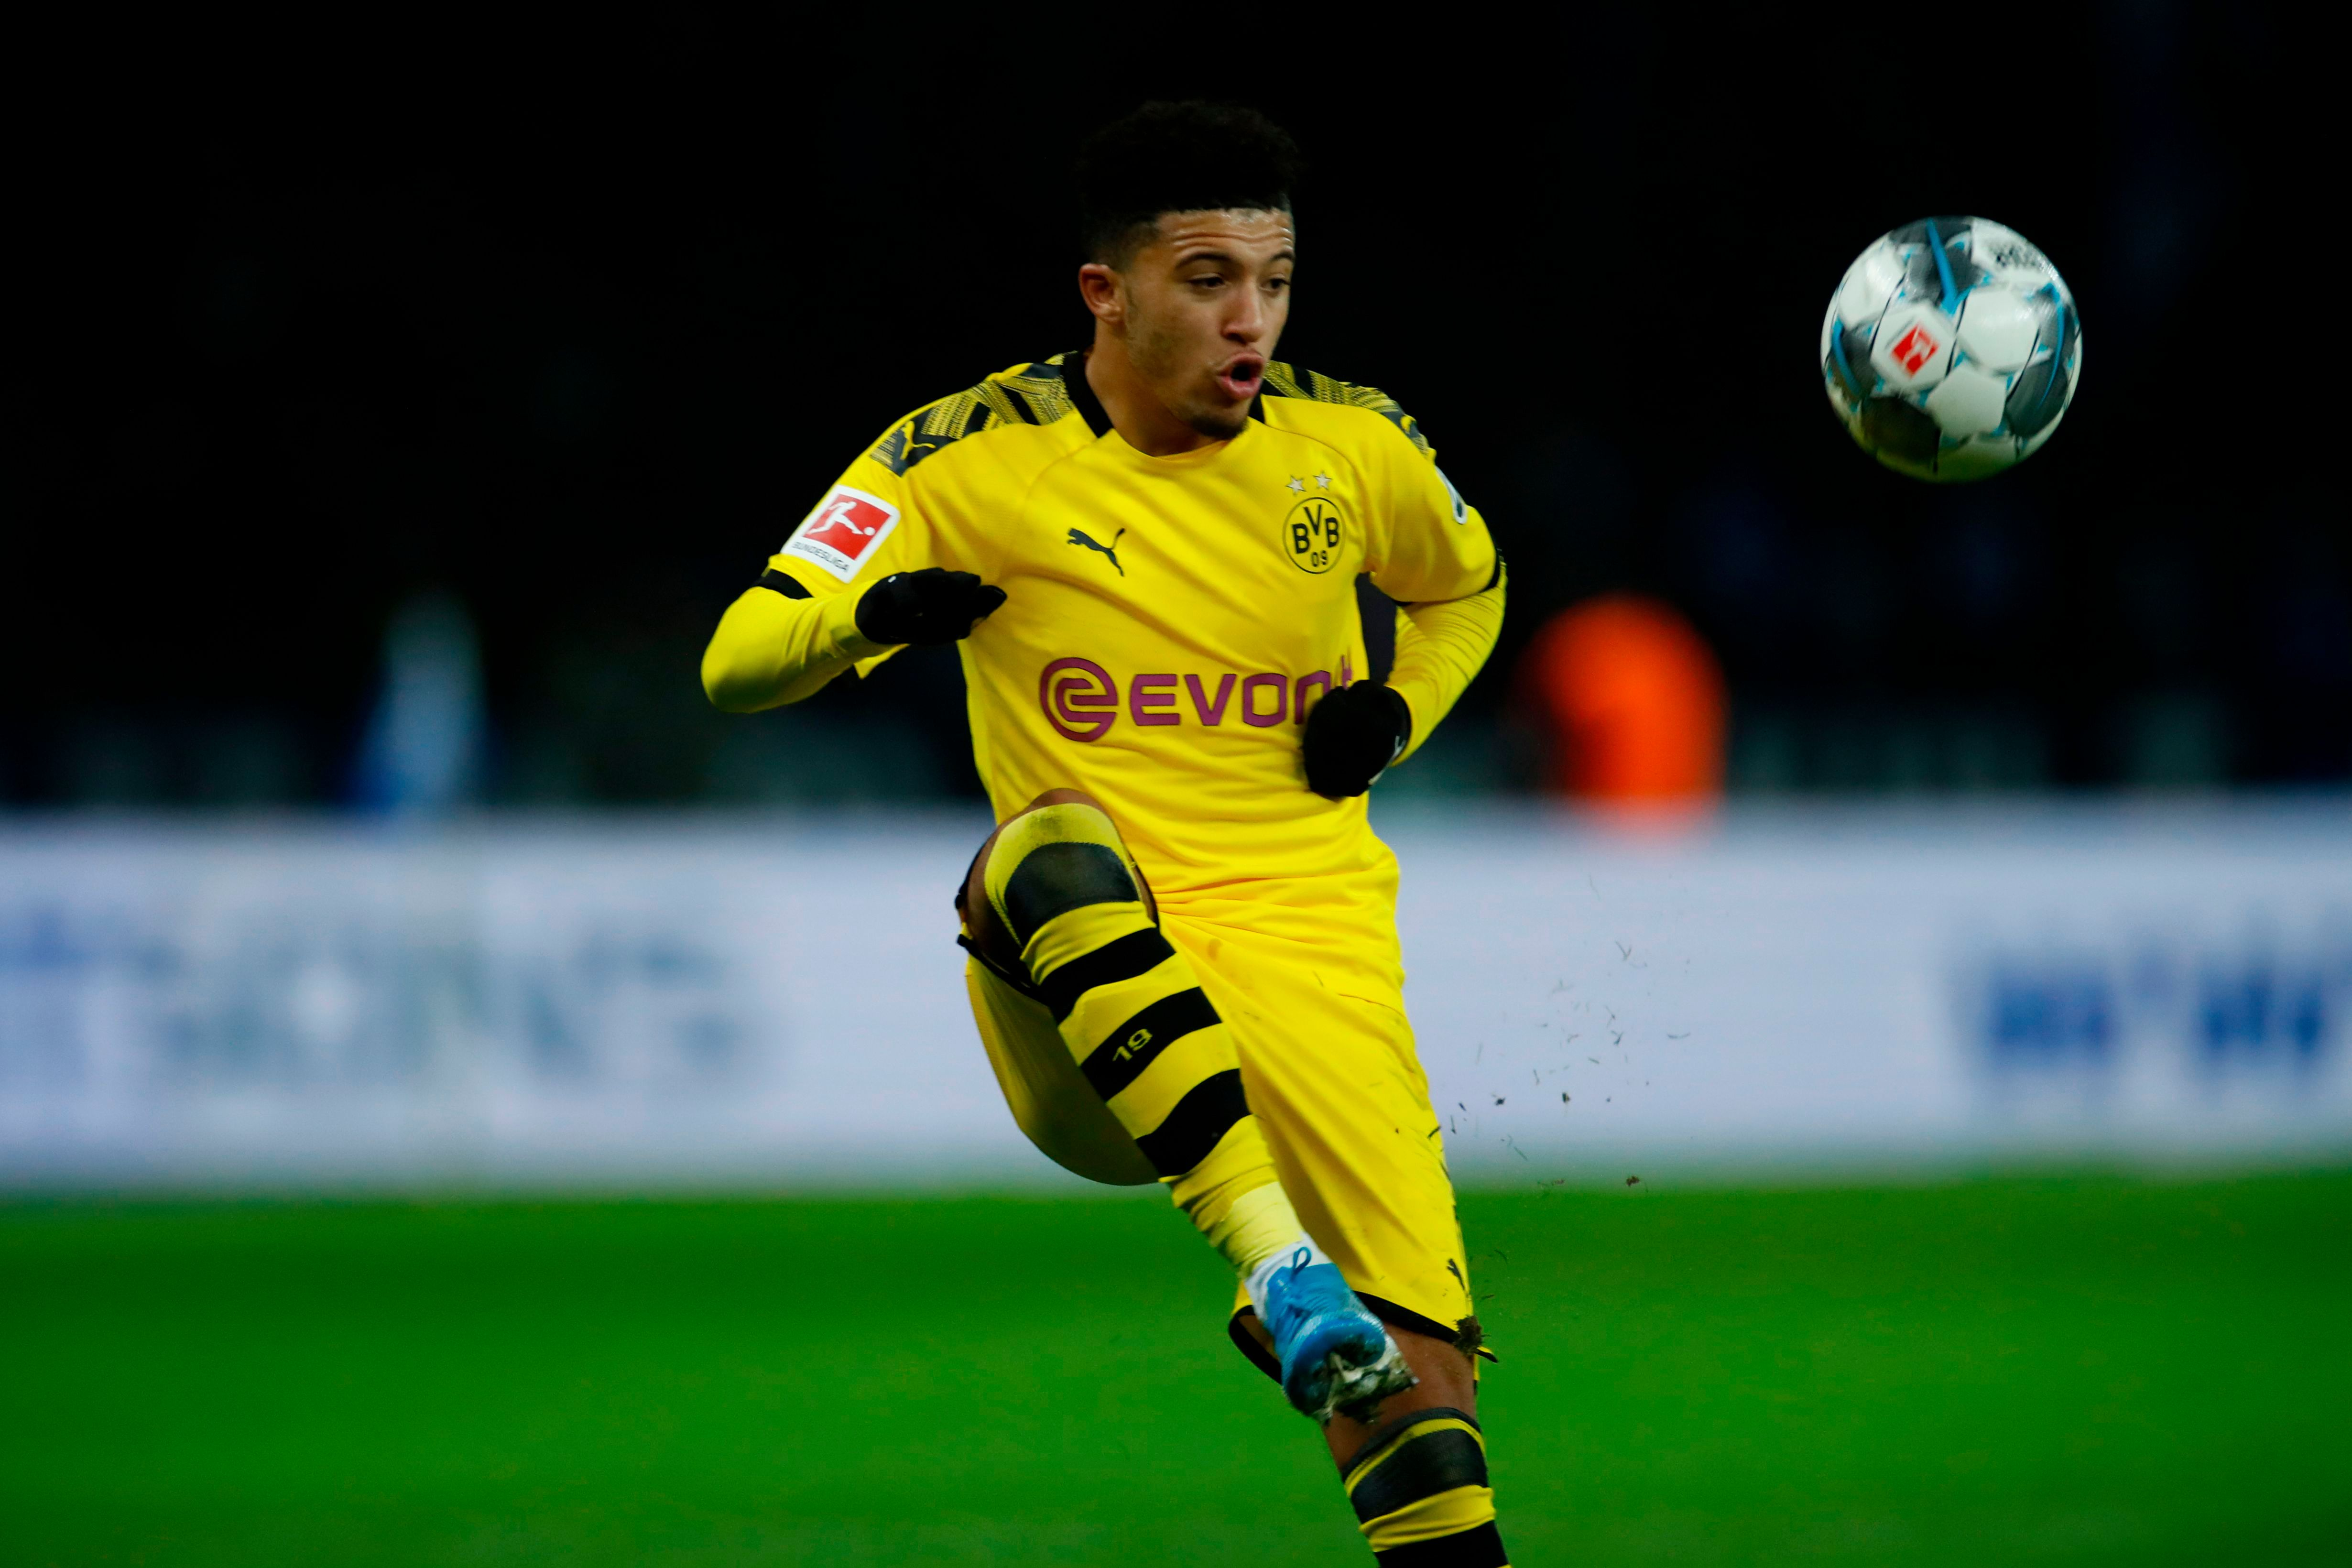 Jadon Sancho could leave Borussia Dortmund next year